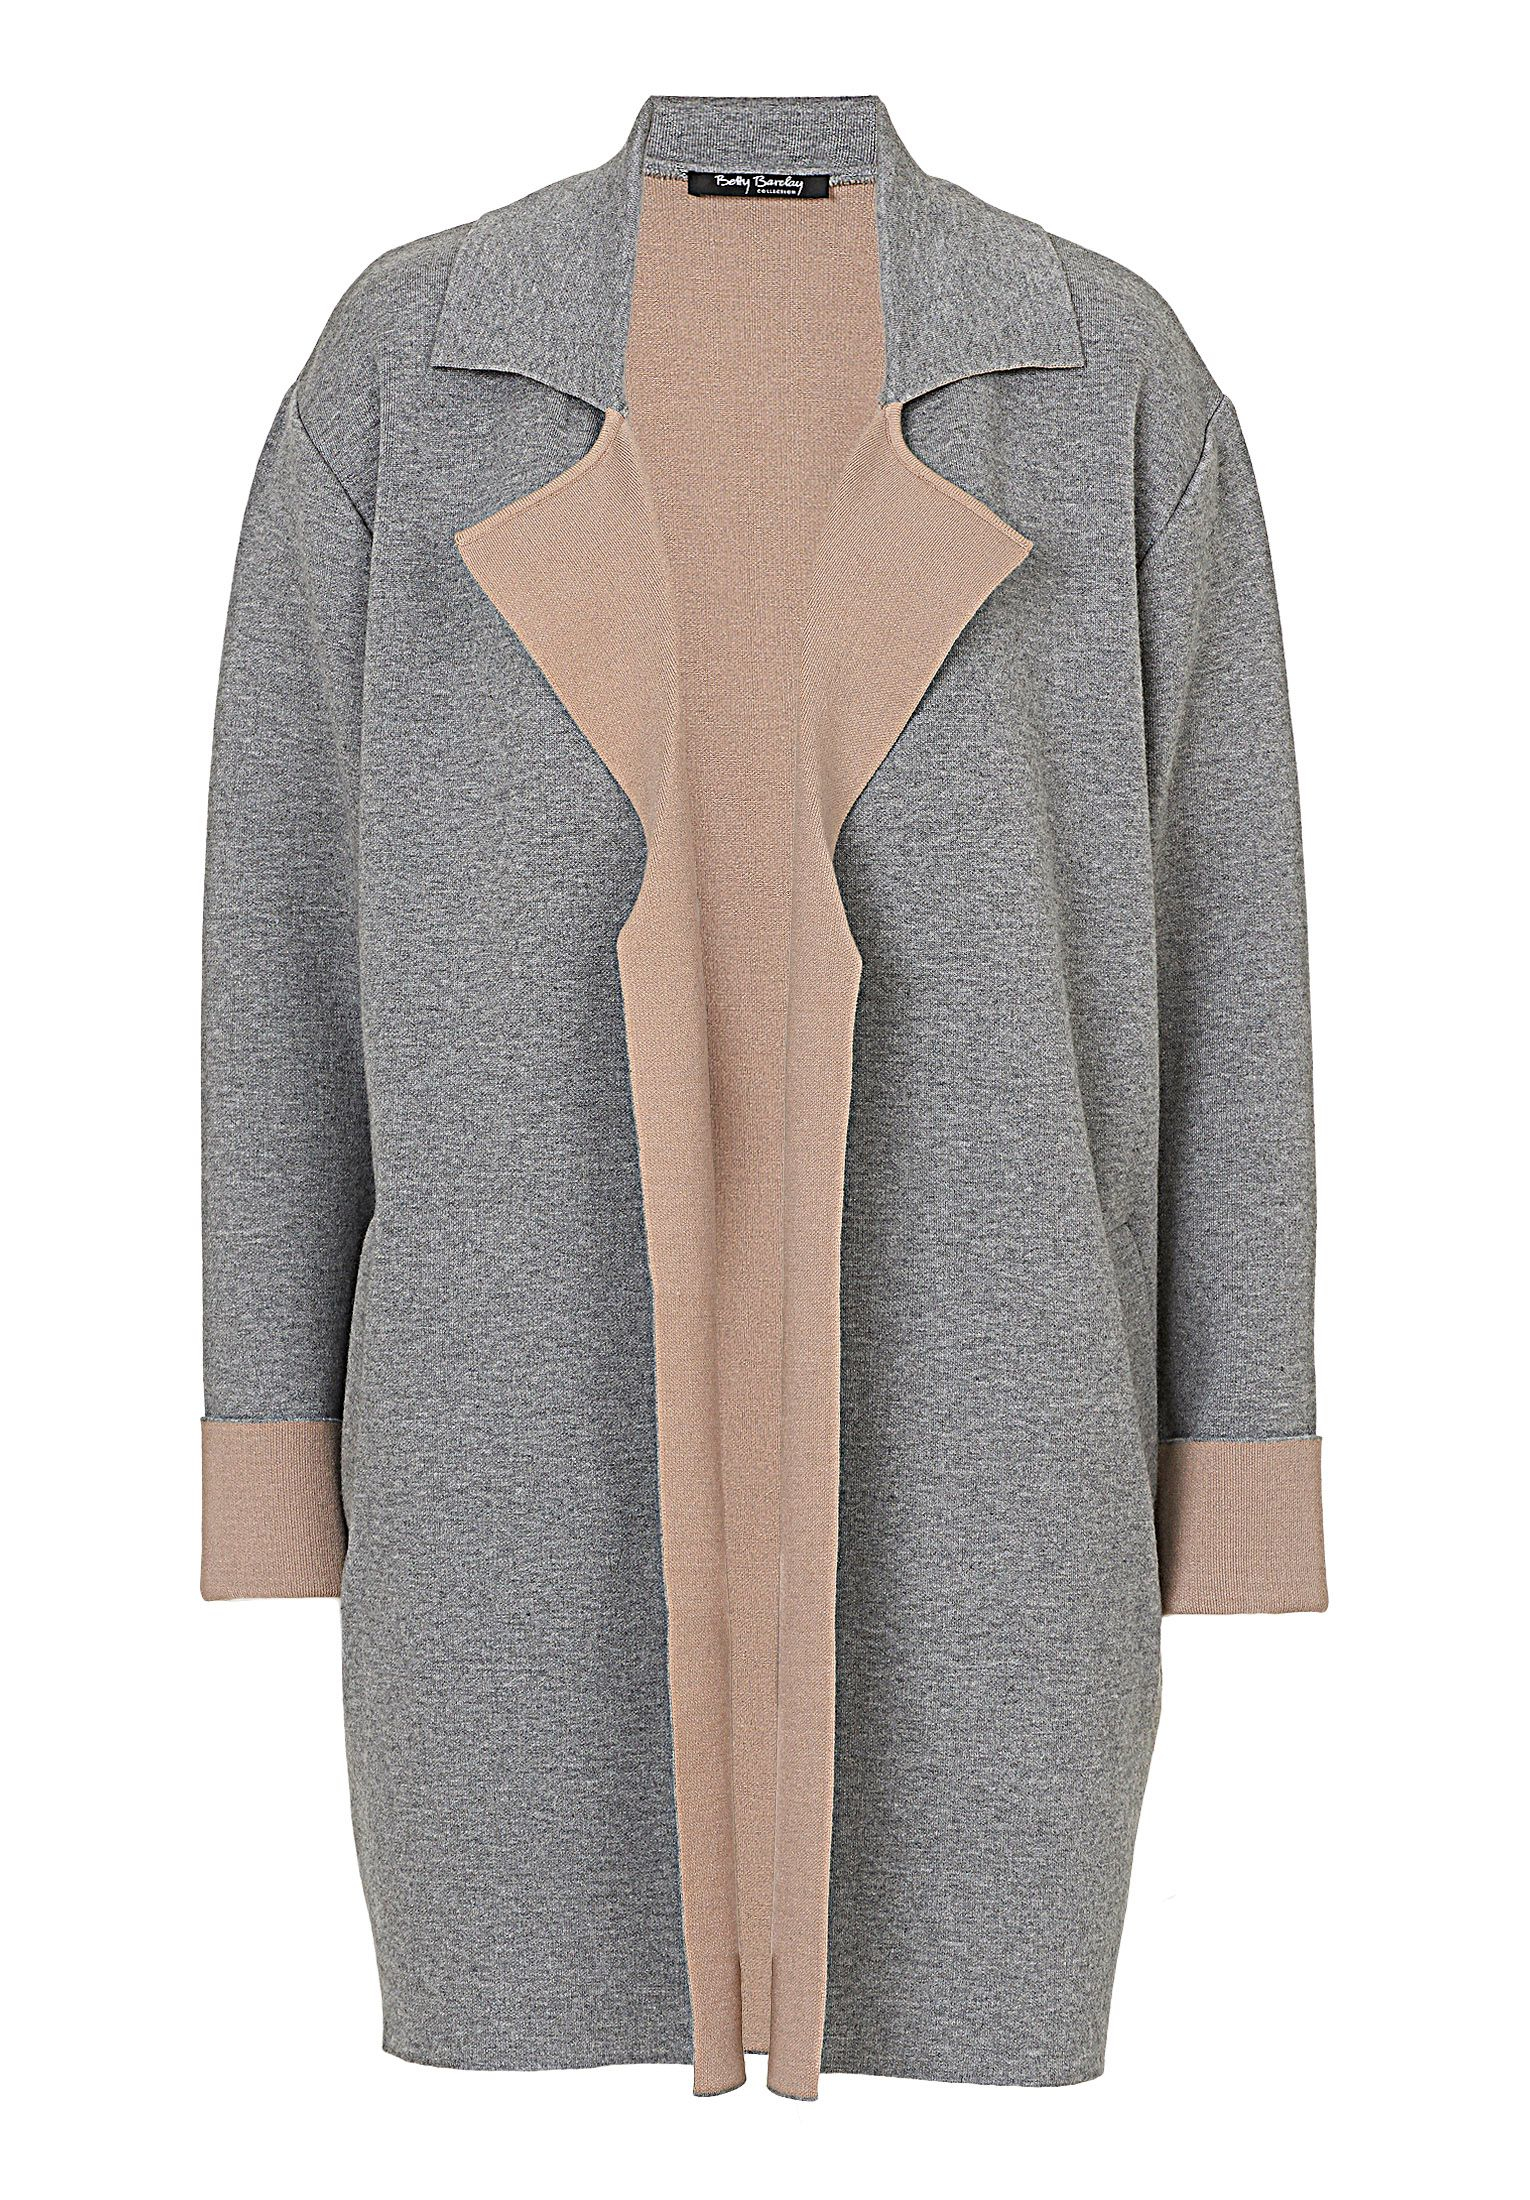 Betty barclay Knitted Cardigan Coat in Gray | Lyst